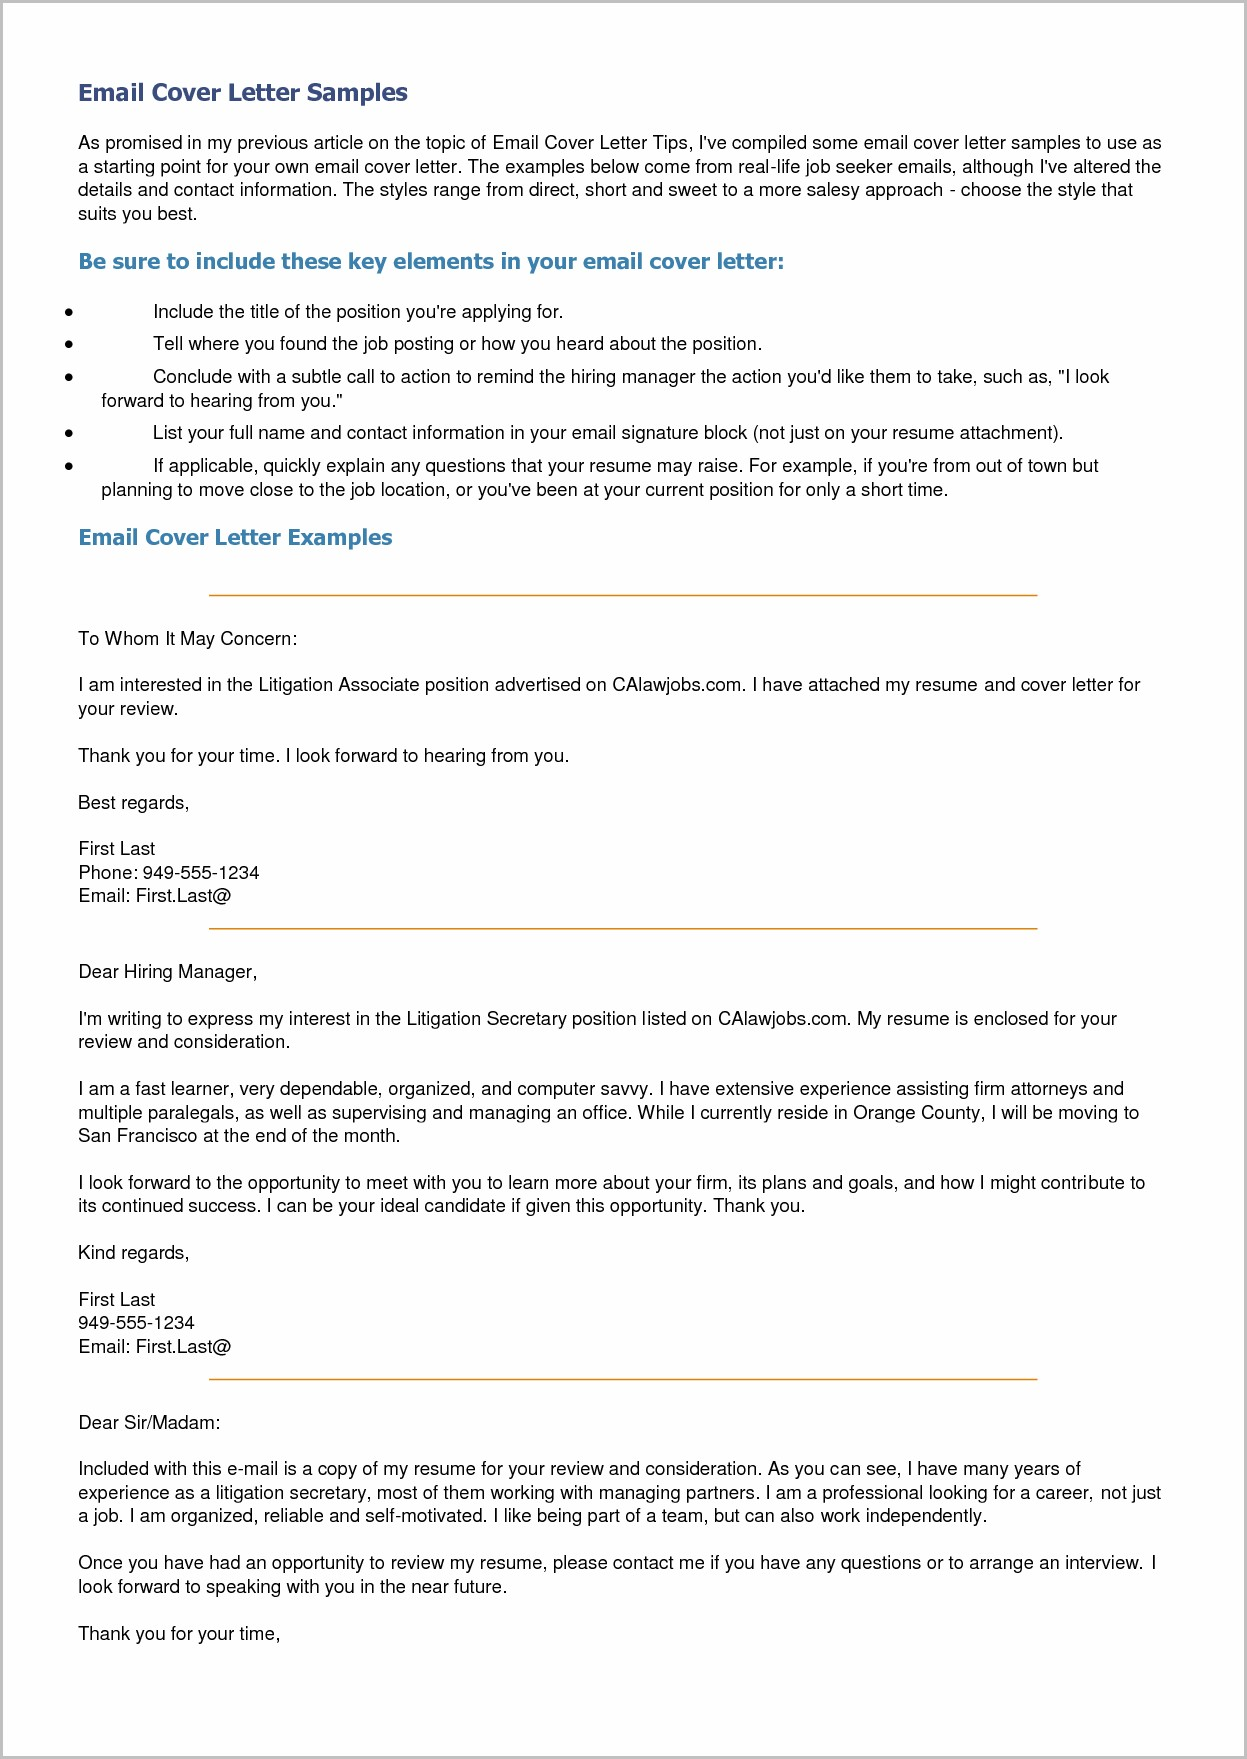 Email Cover Letter Sample Resume Attached